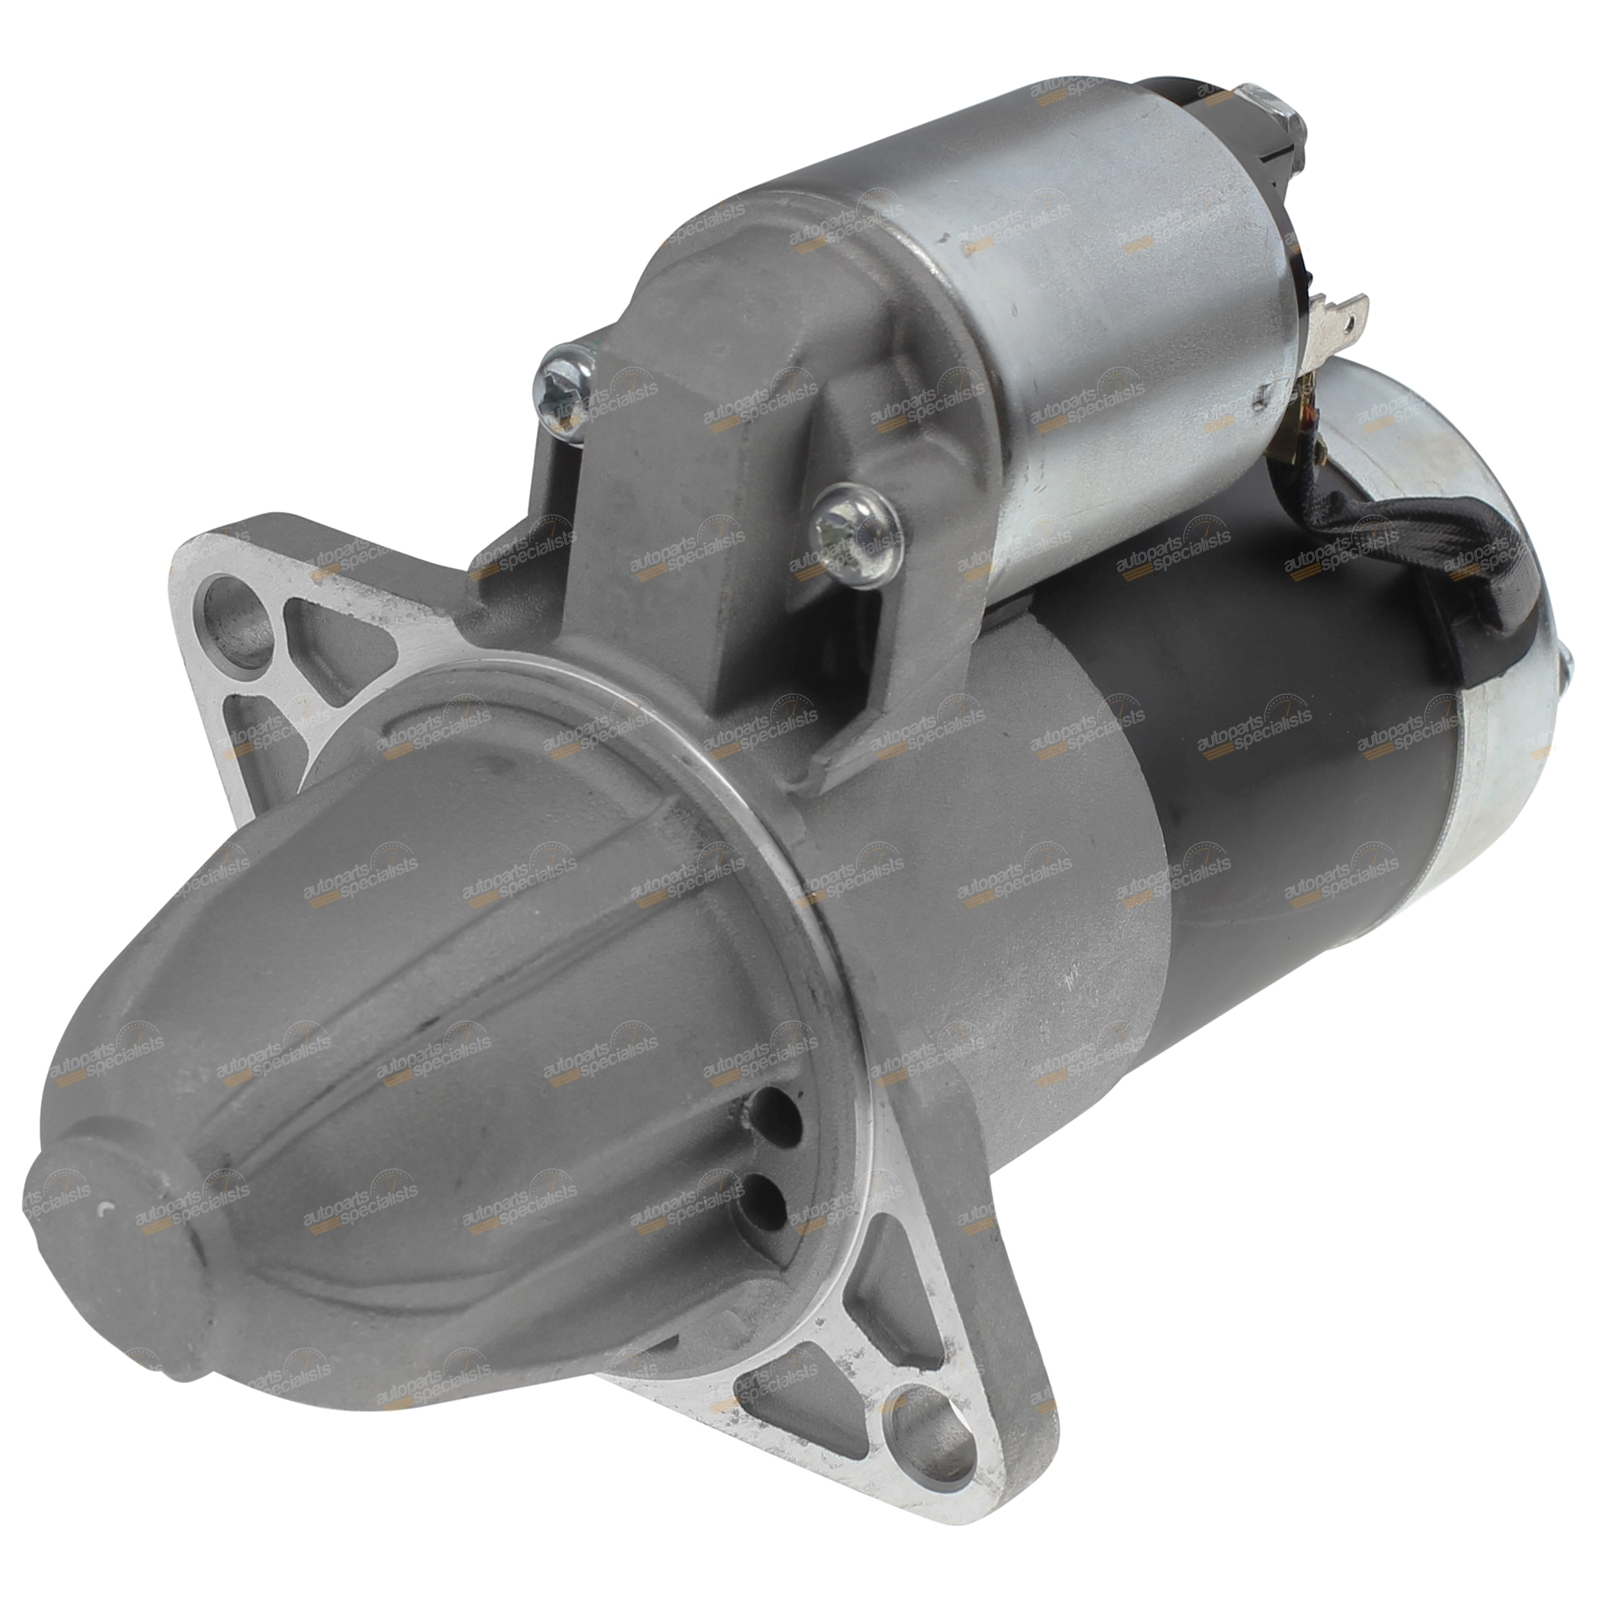 Starter Motor fits Subaru WRX Liberty Brumby Forester Outback Impreza Auto Only